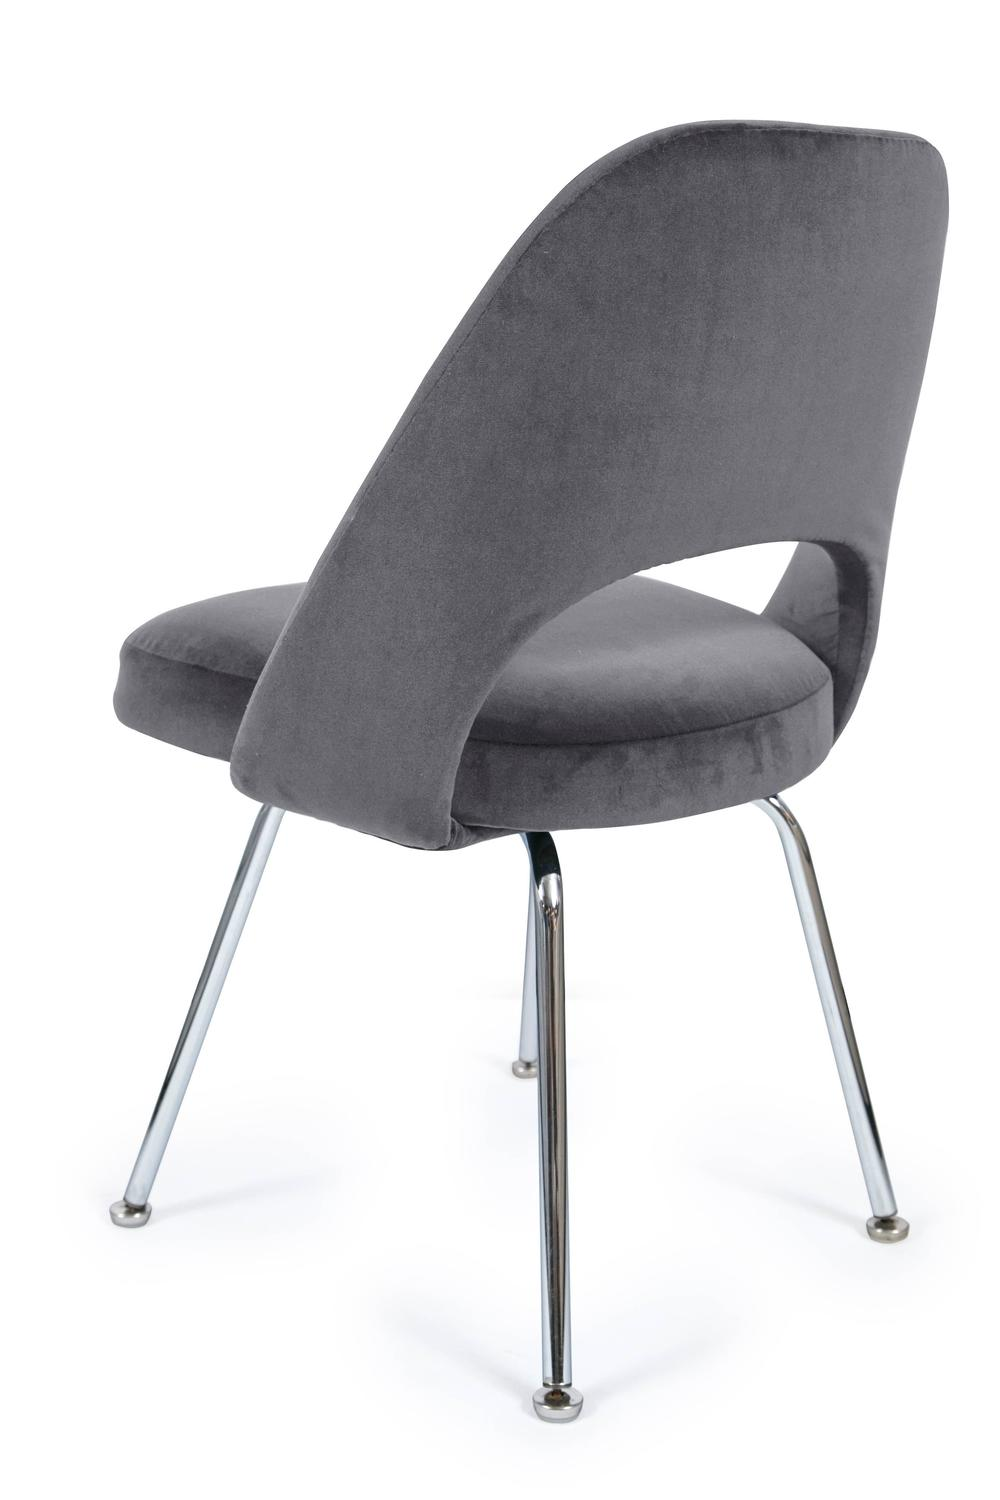 Saarinen executive armless chairs in gunmetal grey velvet for Saarinen executive armless chair